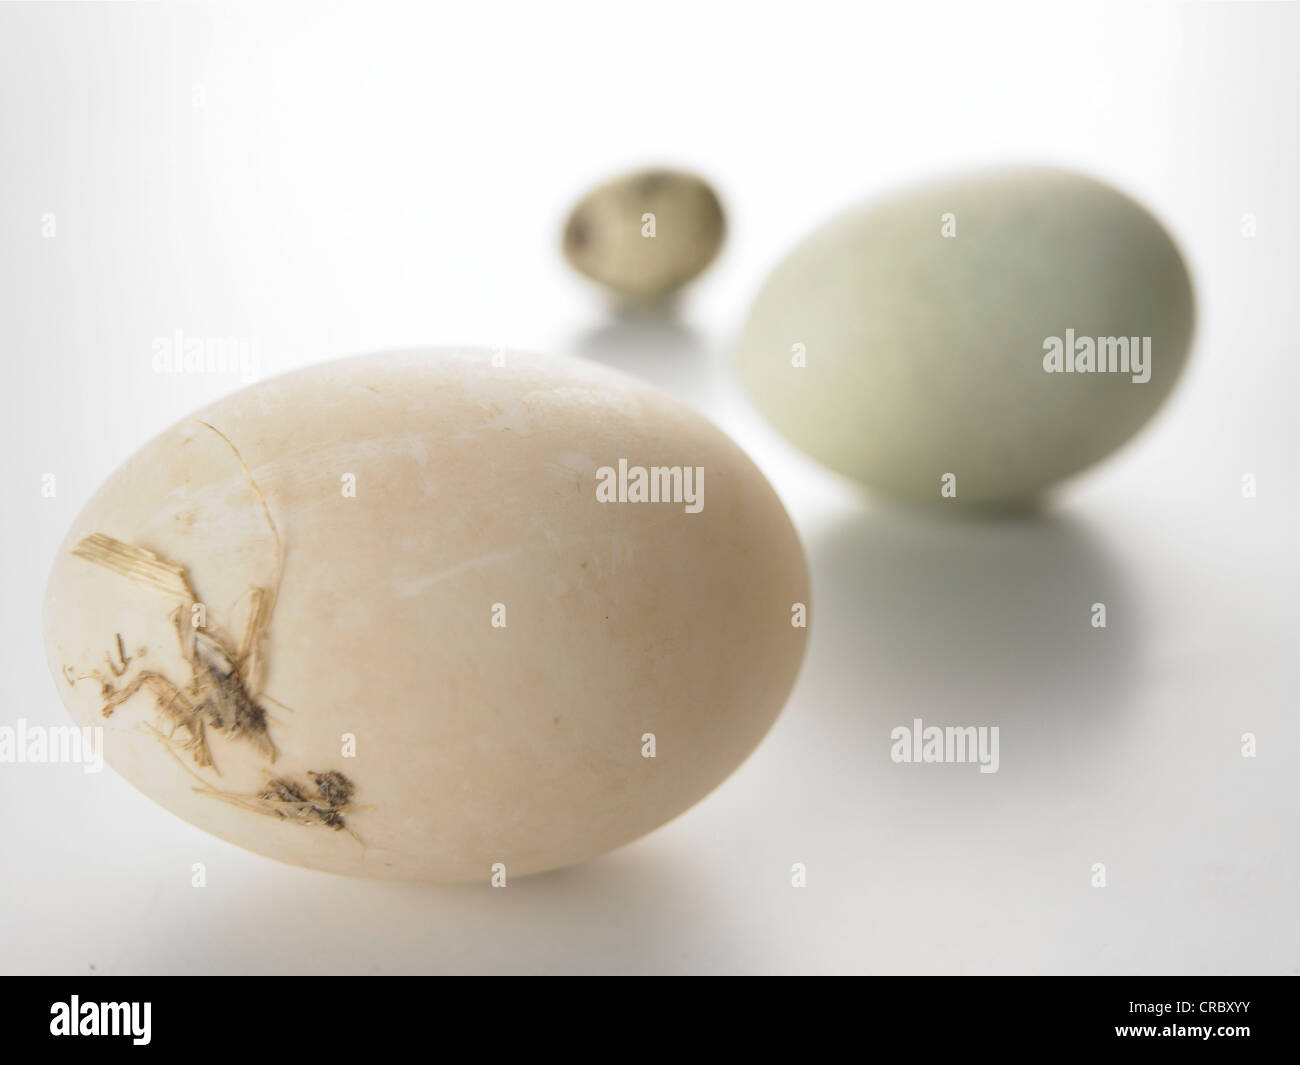 3 eggs on neutral background blue brown speckled - Stock Image